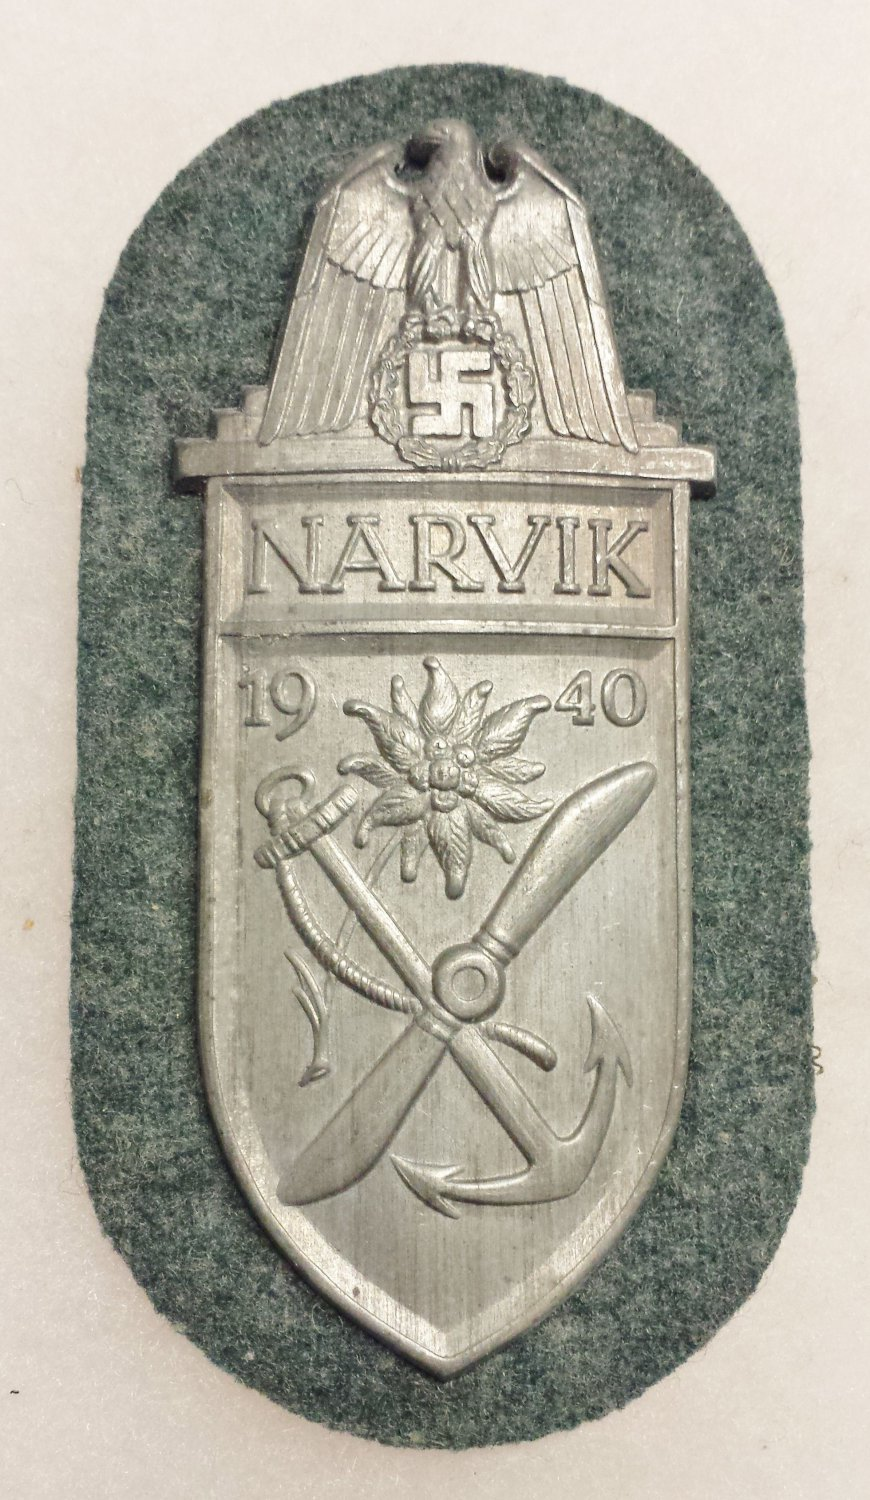 WWII GERMAN NARVIK CAMPAIGN BATTLE SHIELD